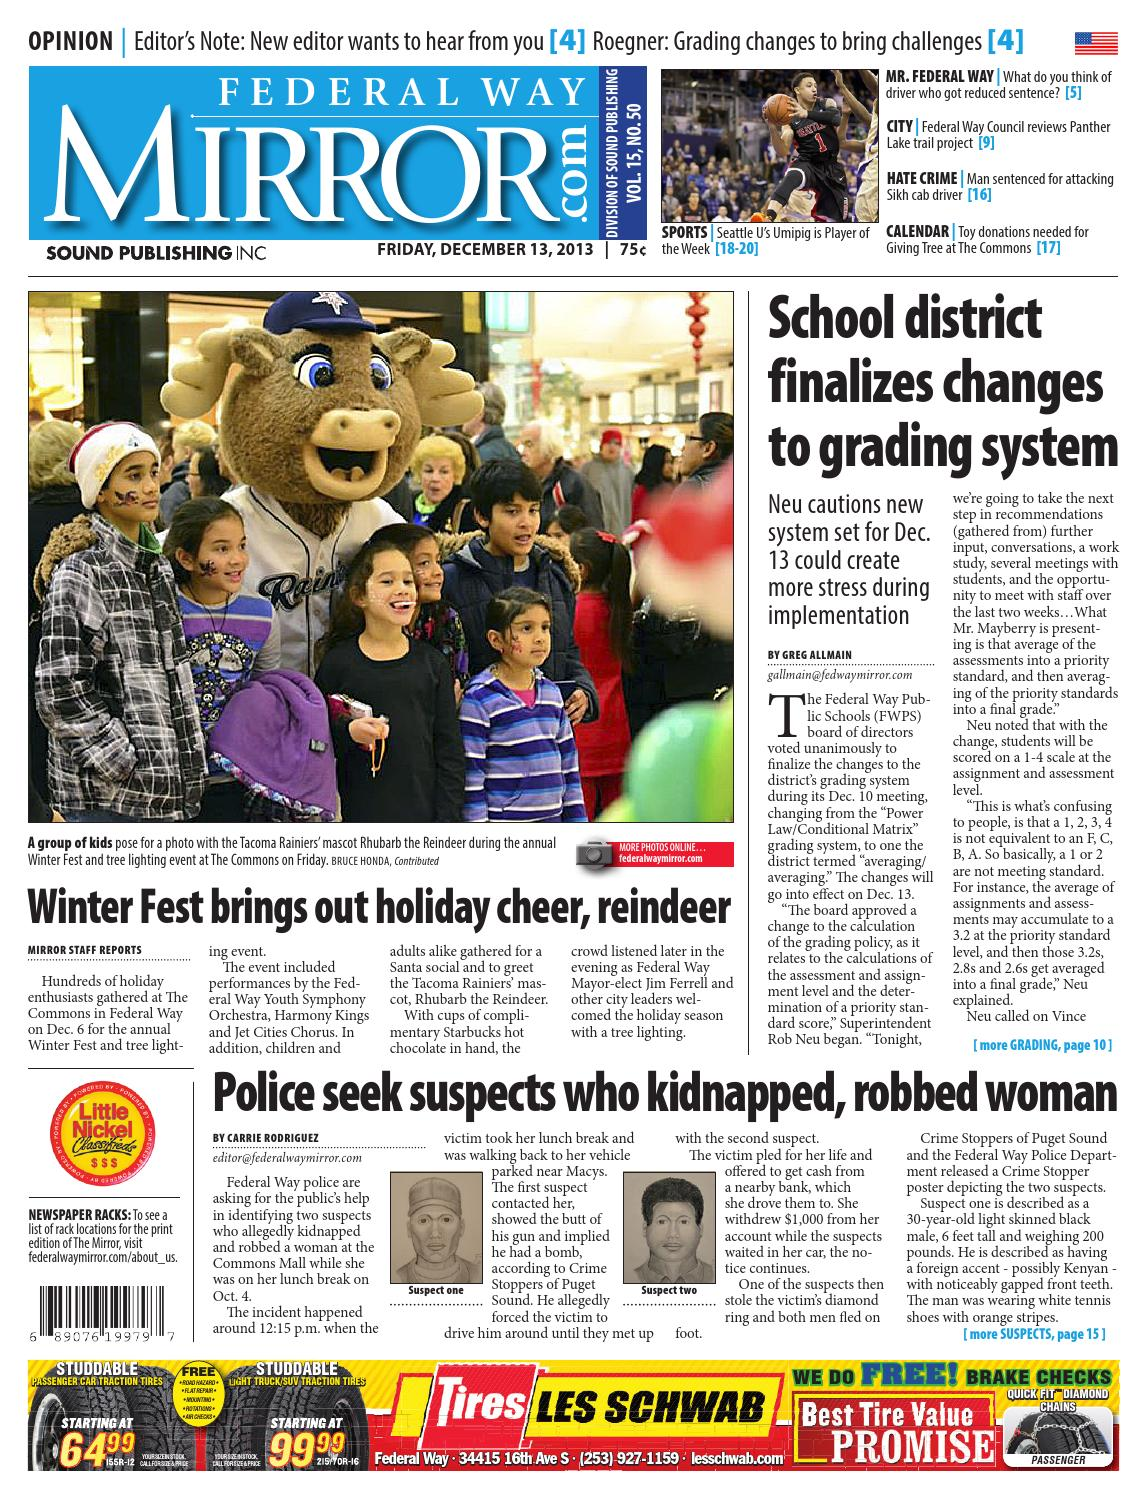 Round Table Federal Way Federal Way Mirror December 13 2013 By Sound Publishing Issuu